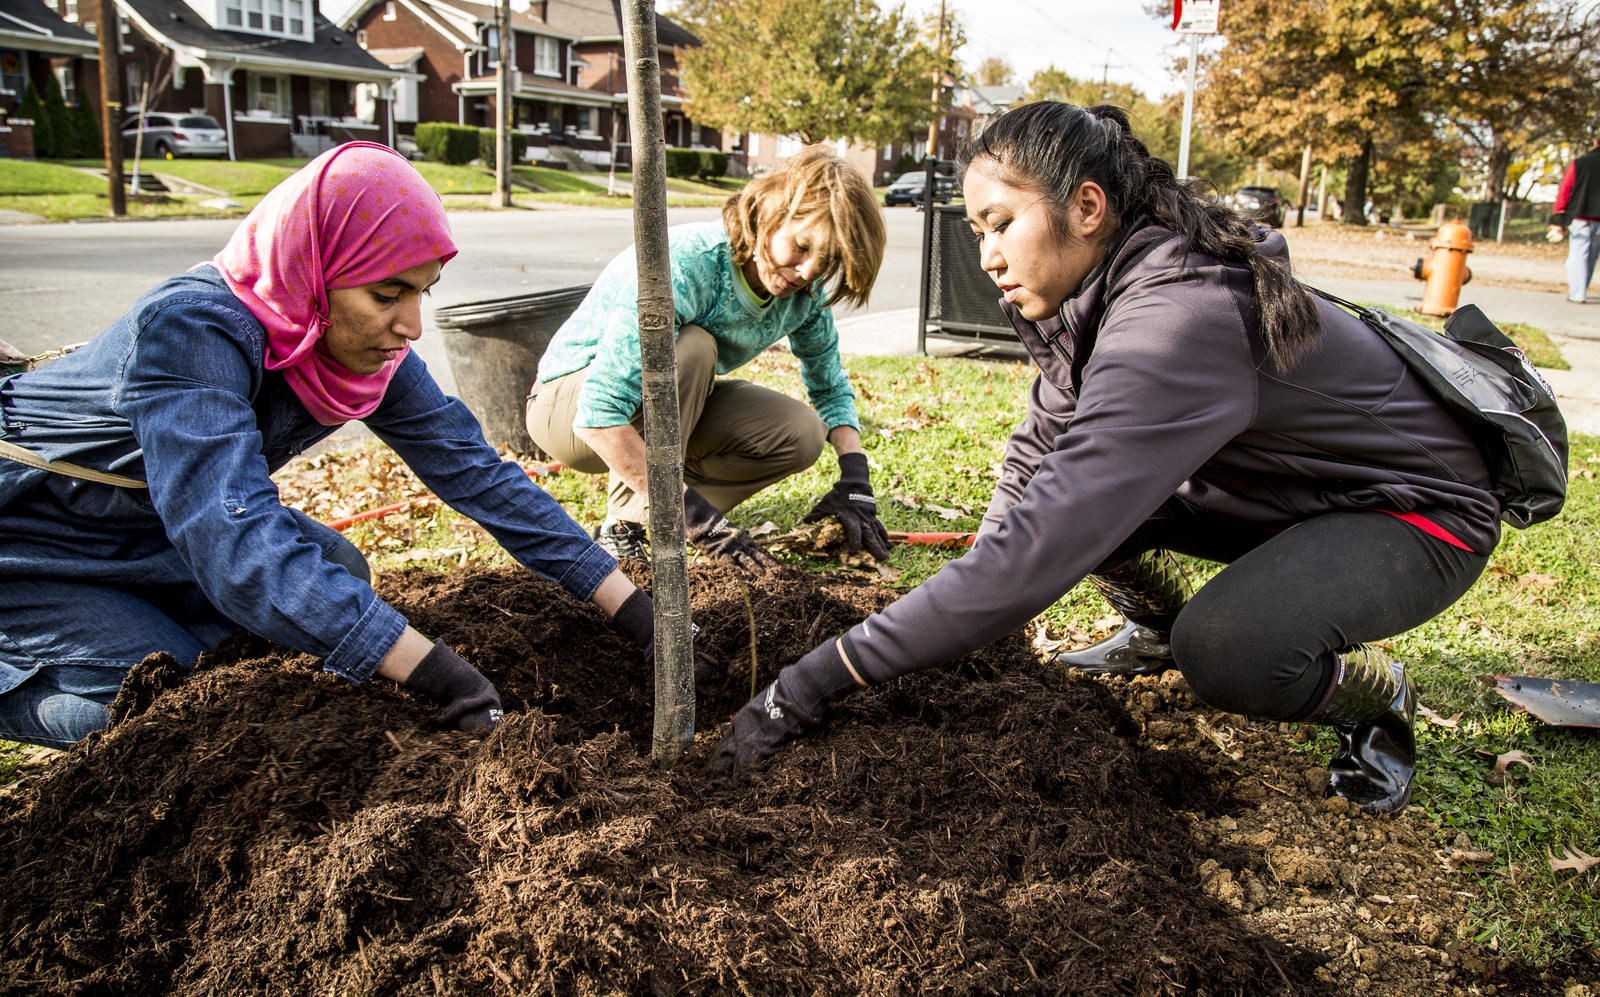 The Brightside Organization, The Nature Conservancy, UPS and Brown-Forman partnered to plant 150 trees along West Broadway from 20th Street to the end at Shawnee Park in Louisville, Kentucky. Photo credit: © The Nature Conservancy (Devan King)